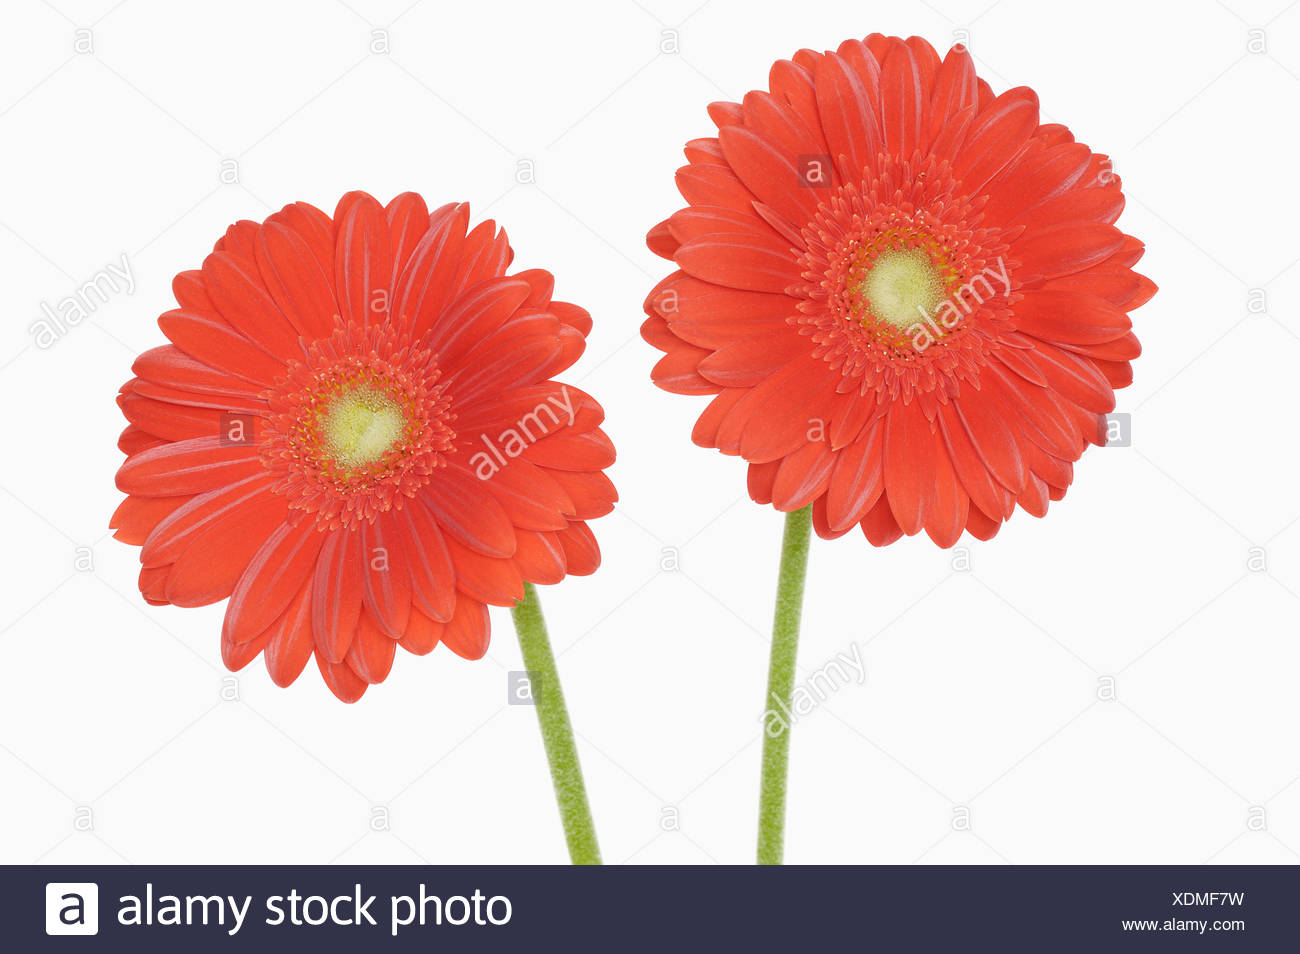 Gerbera flowers, close-up - Stock Image